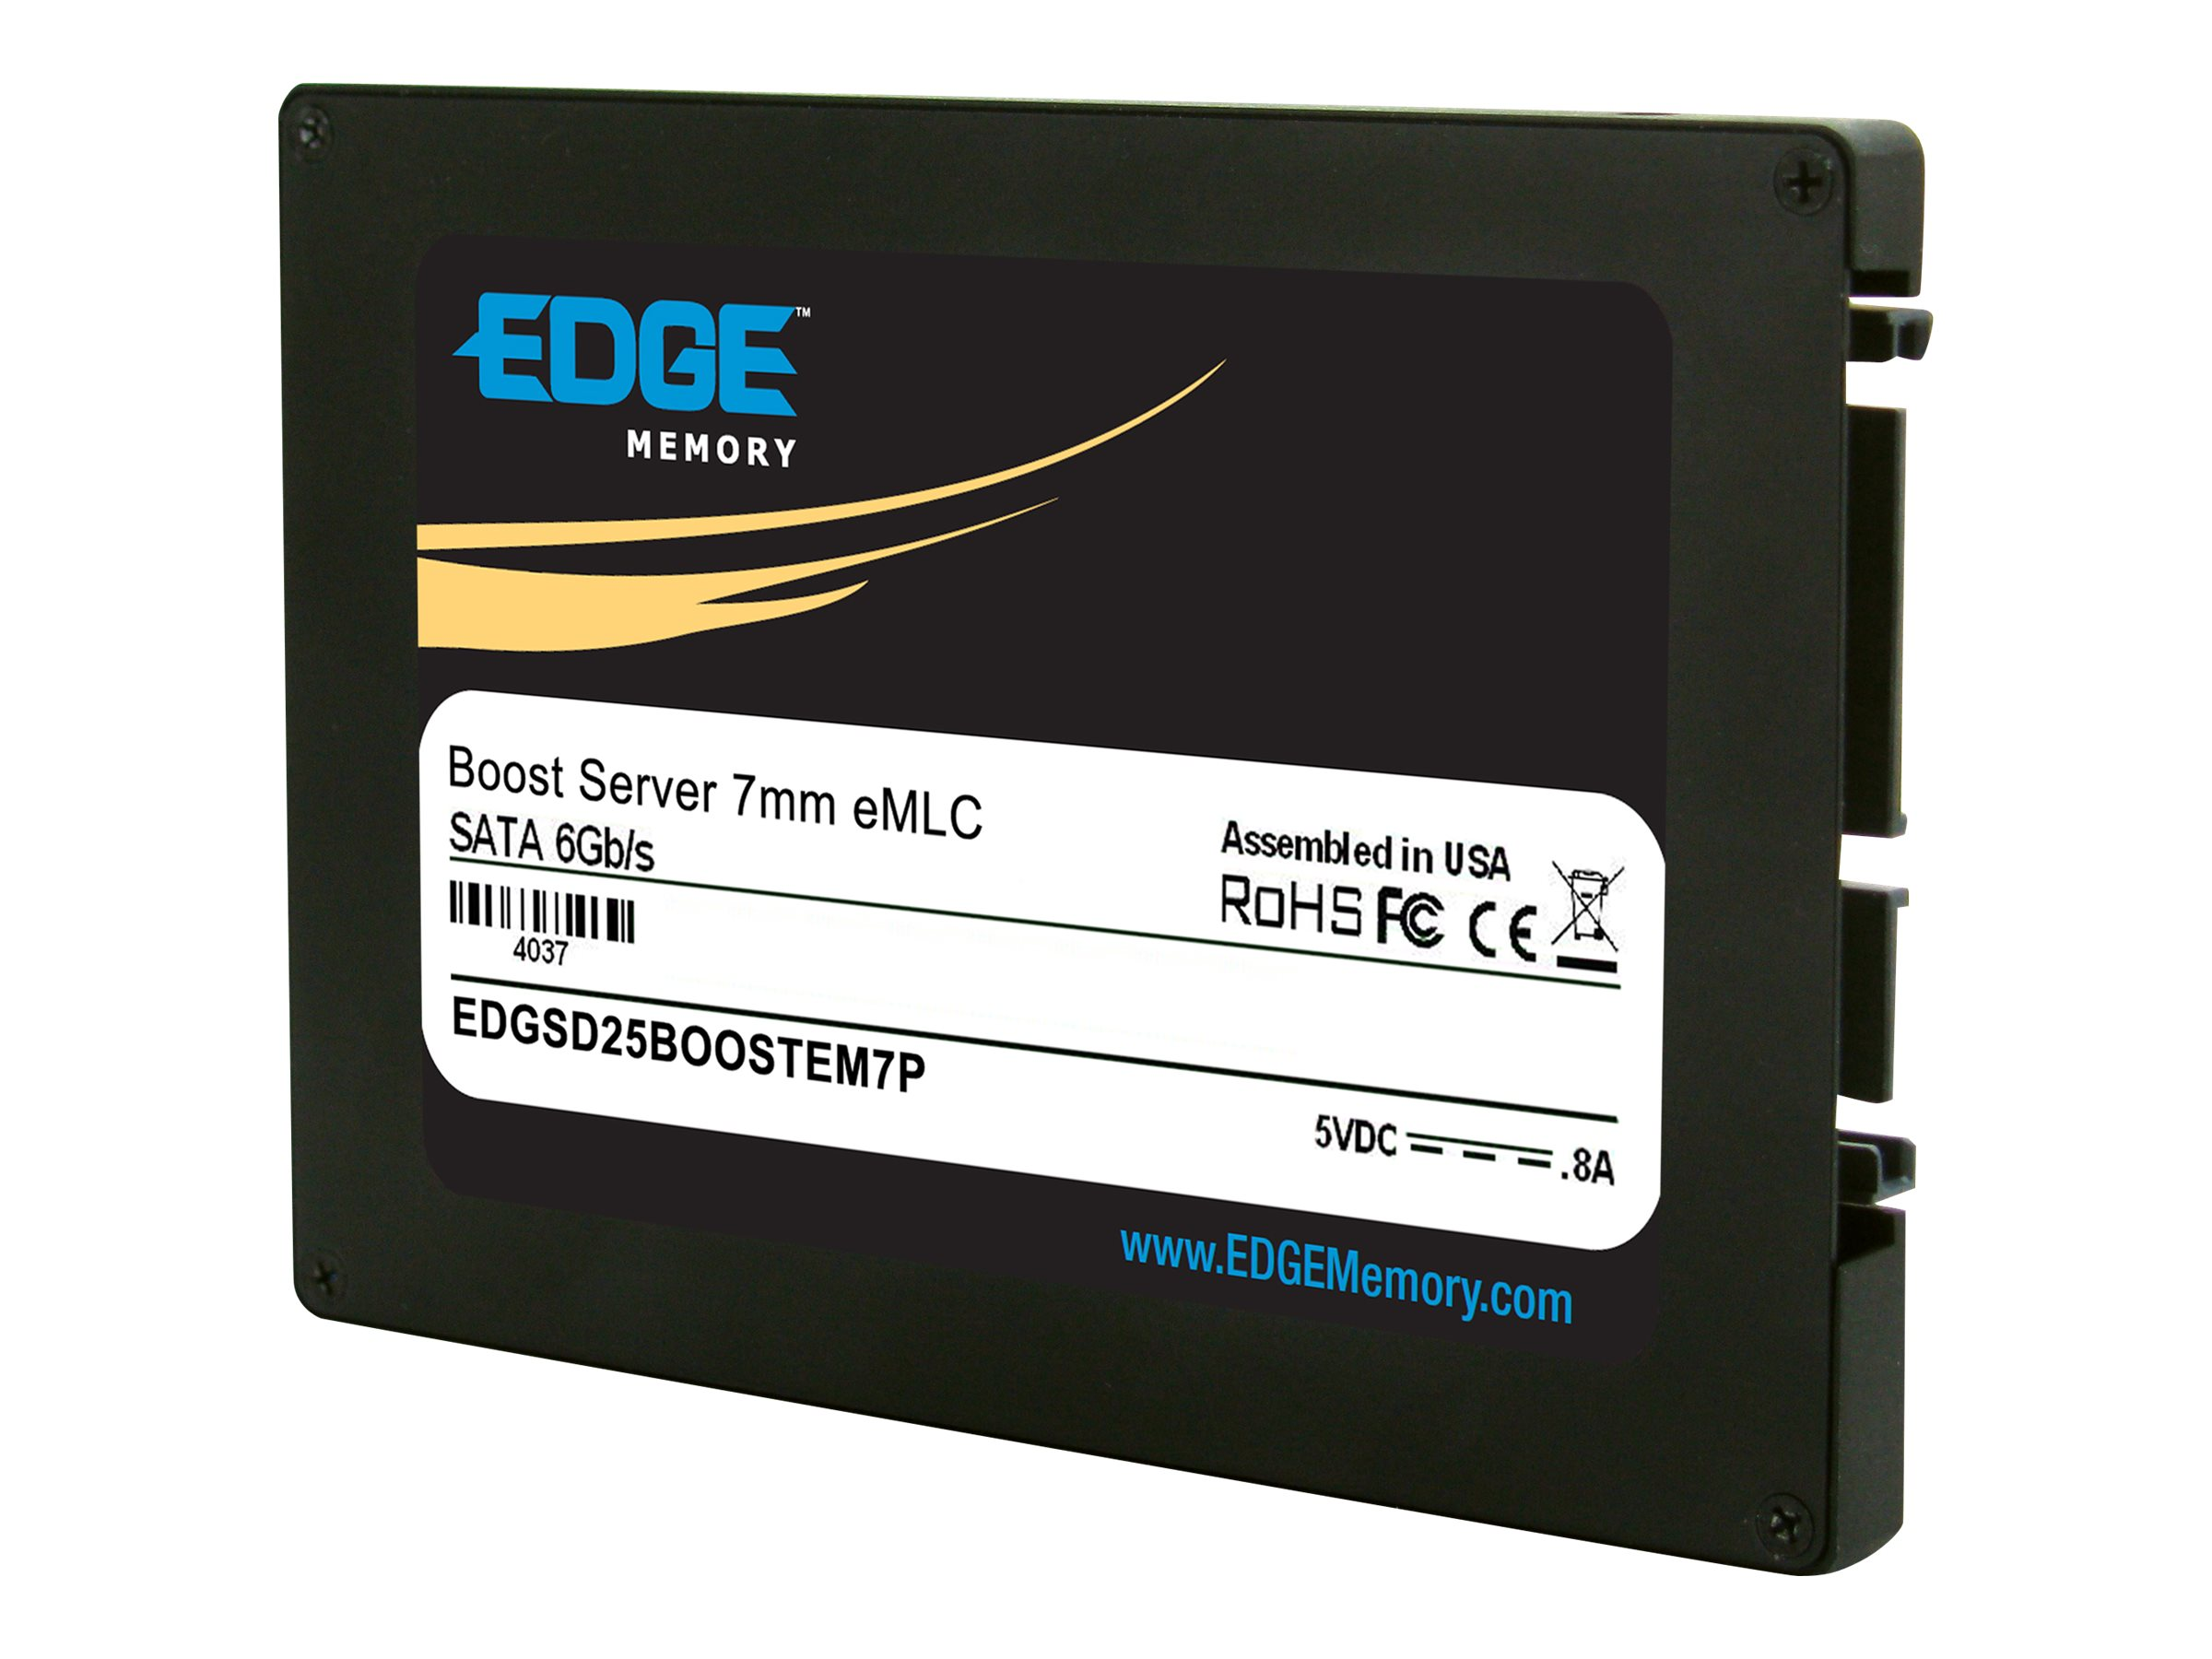 Edge 400GB Boost Server SATA 6Gb s eMLC 2.5 7mm Internal Solid State Drive